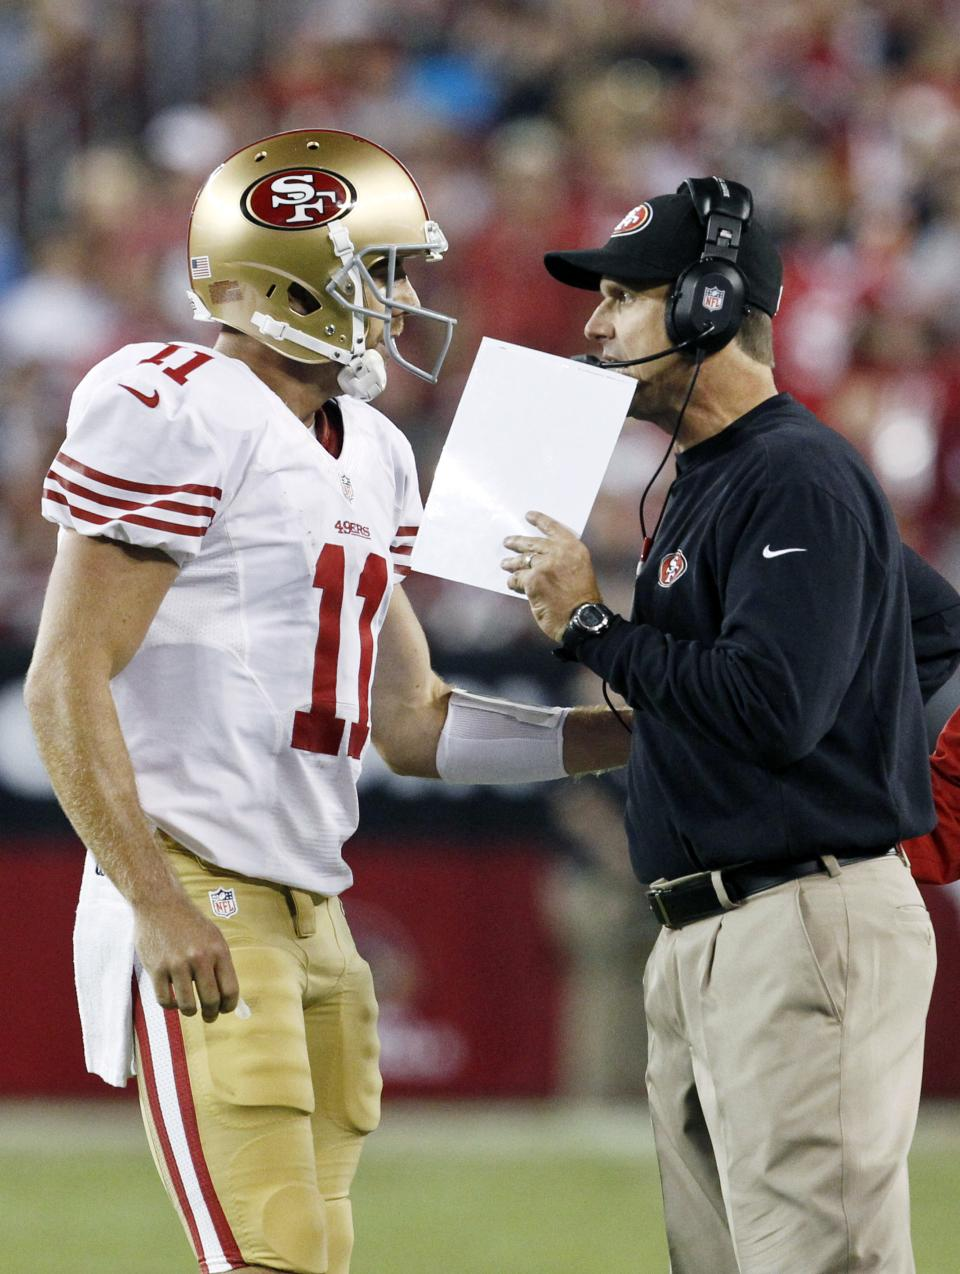 San Francisco 49ers head coach Jim Harbaugh, right, talks with Alex Smith (11) during a timeout in the first half of an NFL football game against the Arizona Cardinals Monday, Oct. 29, 2012, in Glendale, Ariz. (AP Photo/Ross D. Franklin)